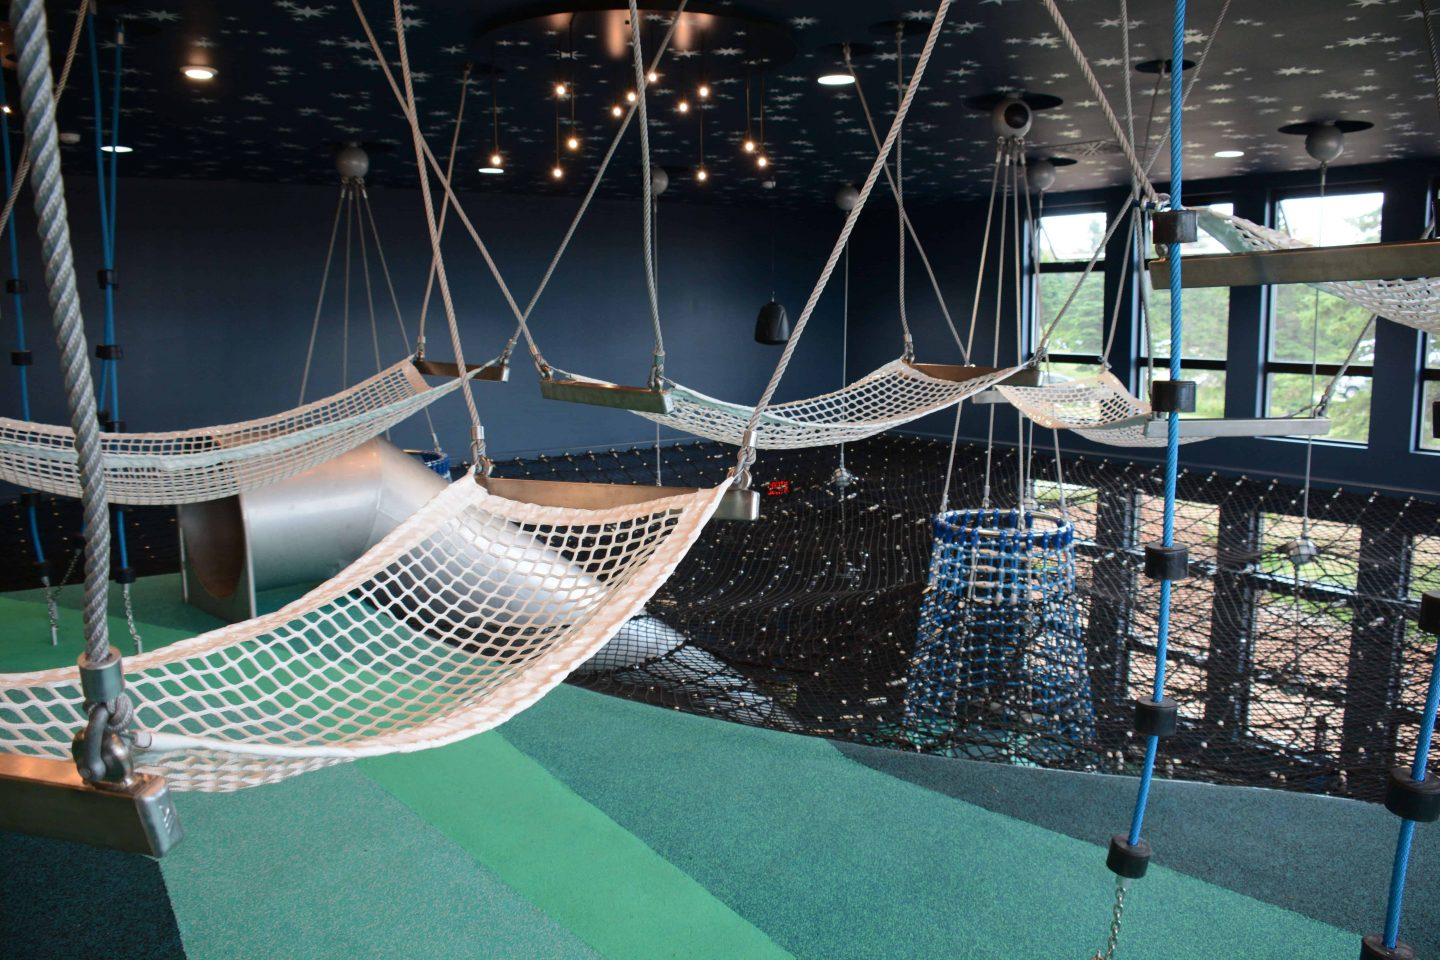 Hammocks suspended from the ceiling - Berliner Seilfabrik - Play Equipment for Life